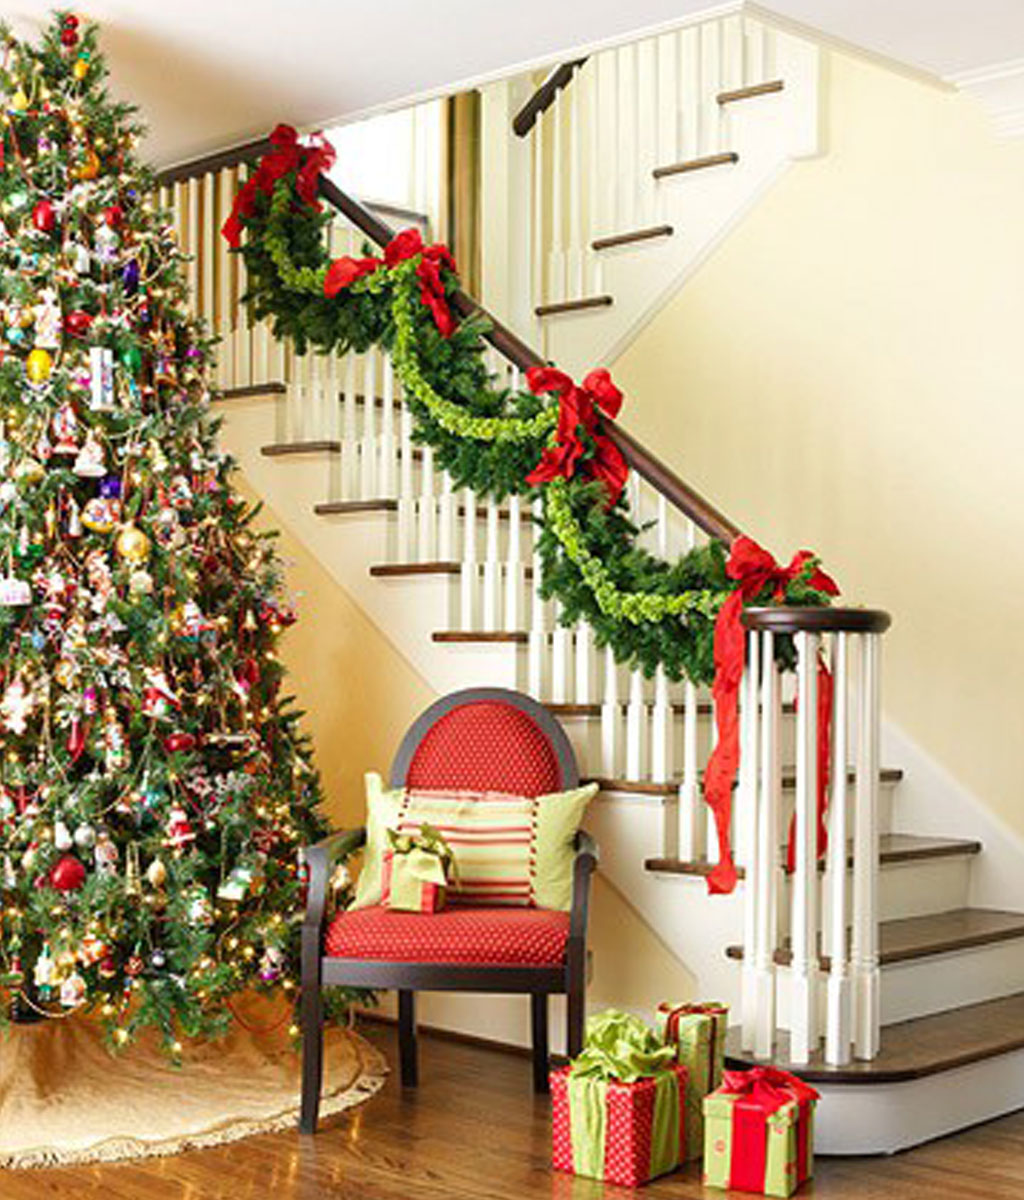 Christmas Home Decor Ideas 9 cheap and festive christmas decor ideas for your home |